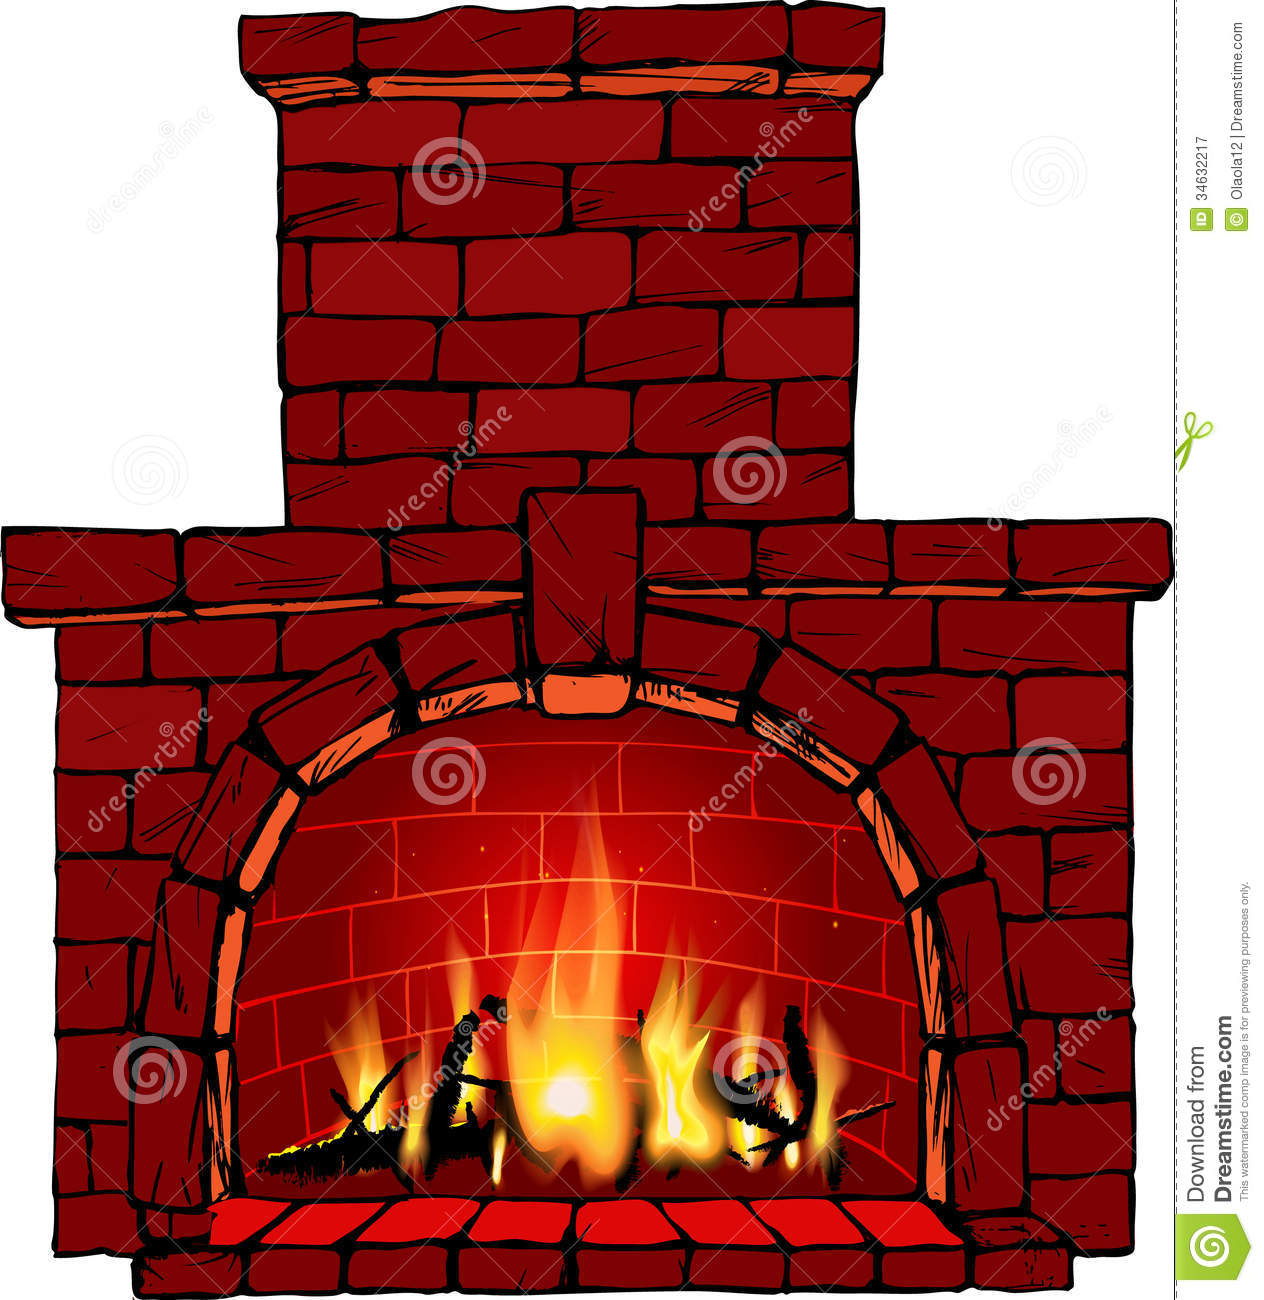 Fireplace Free Clipart-Fireplace Free Clipart-8